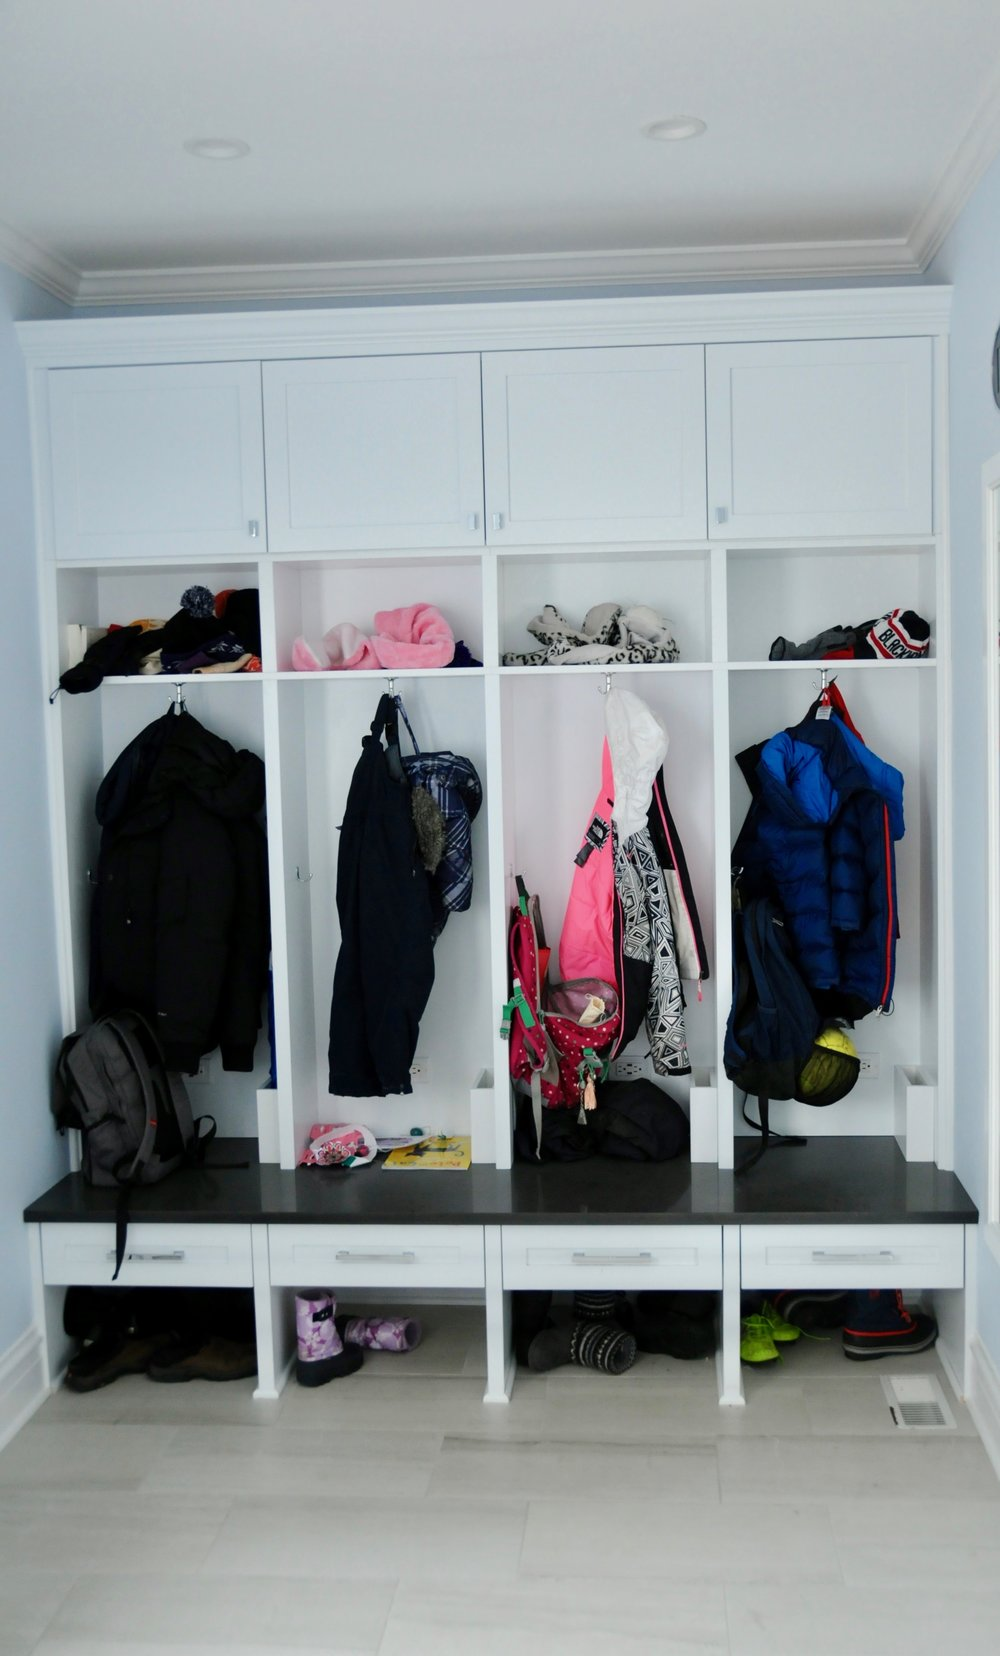 Each child has a cubby with space below for shoes, a drawer, coat hooks, and a backpack hook. The mix of open and closed storage provides easy access and flexibility for storing seasonal items. Each cubby also has an outlet with USB ports. Built-in storage boxes for tablets, phones, and laptops keep the electronic devices safe and in place while charging.